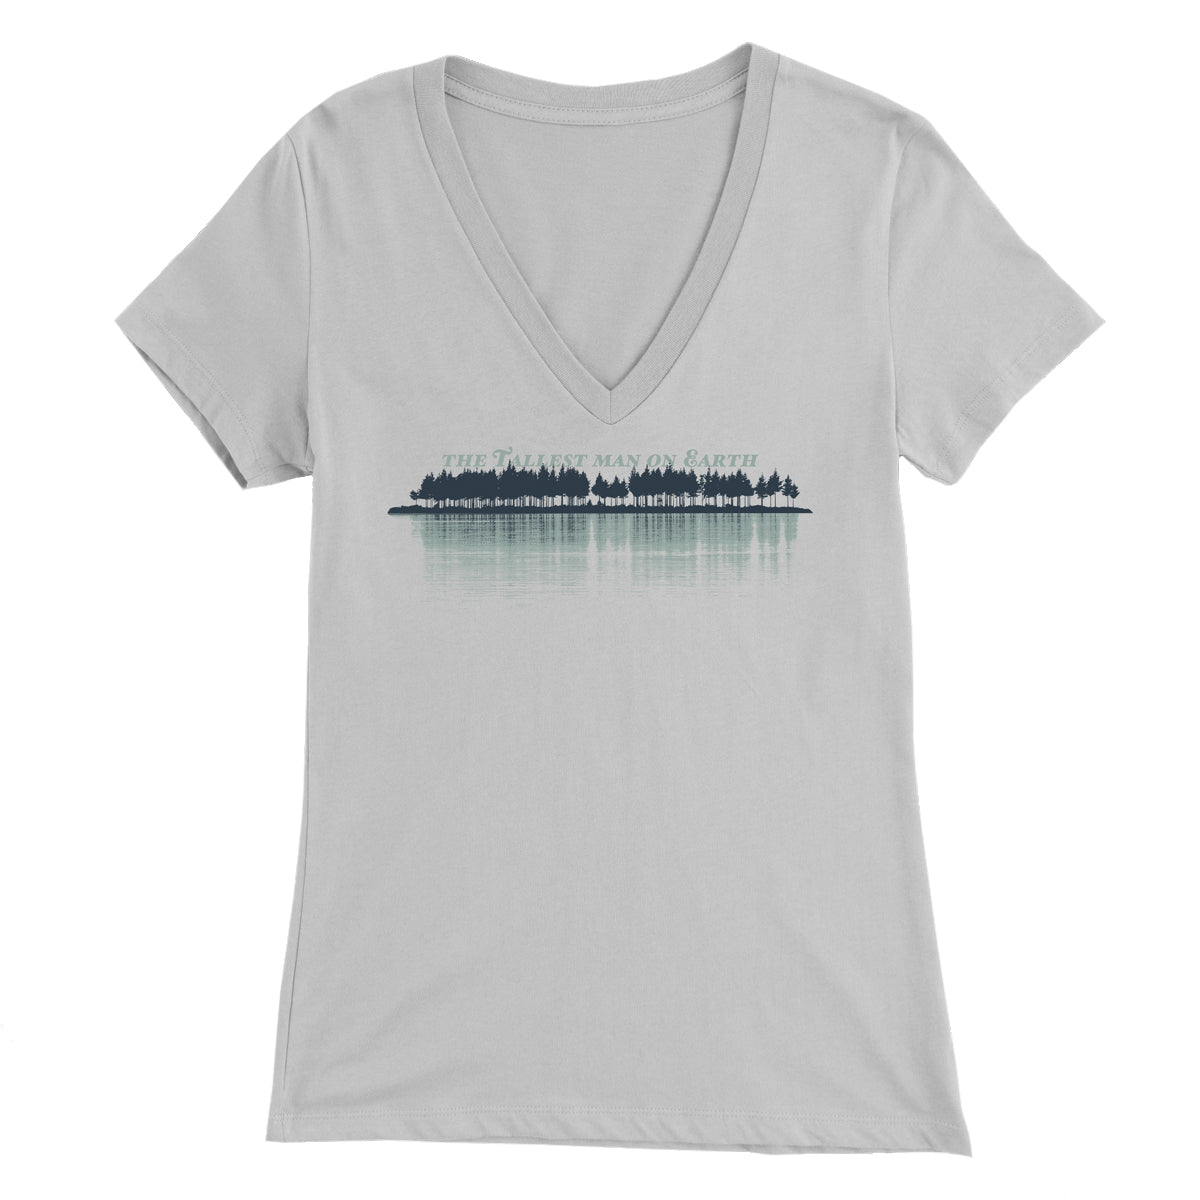 Tallest Man on Earth Womens Silver V-neck tee with tree line design